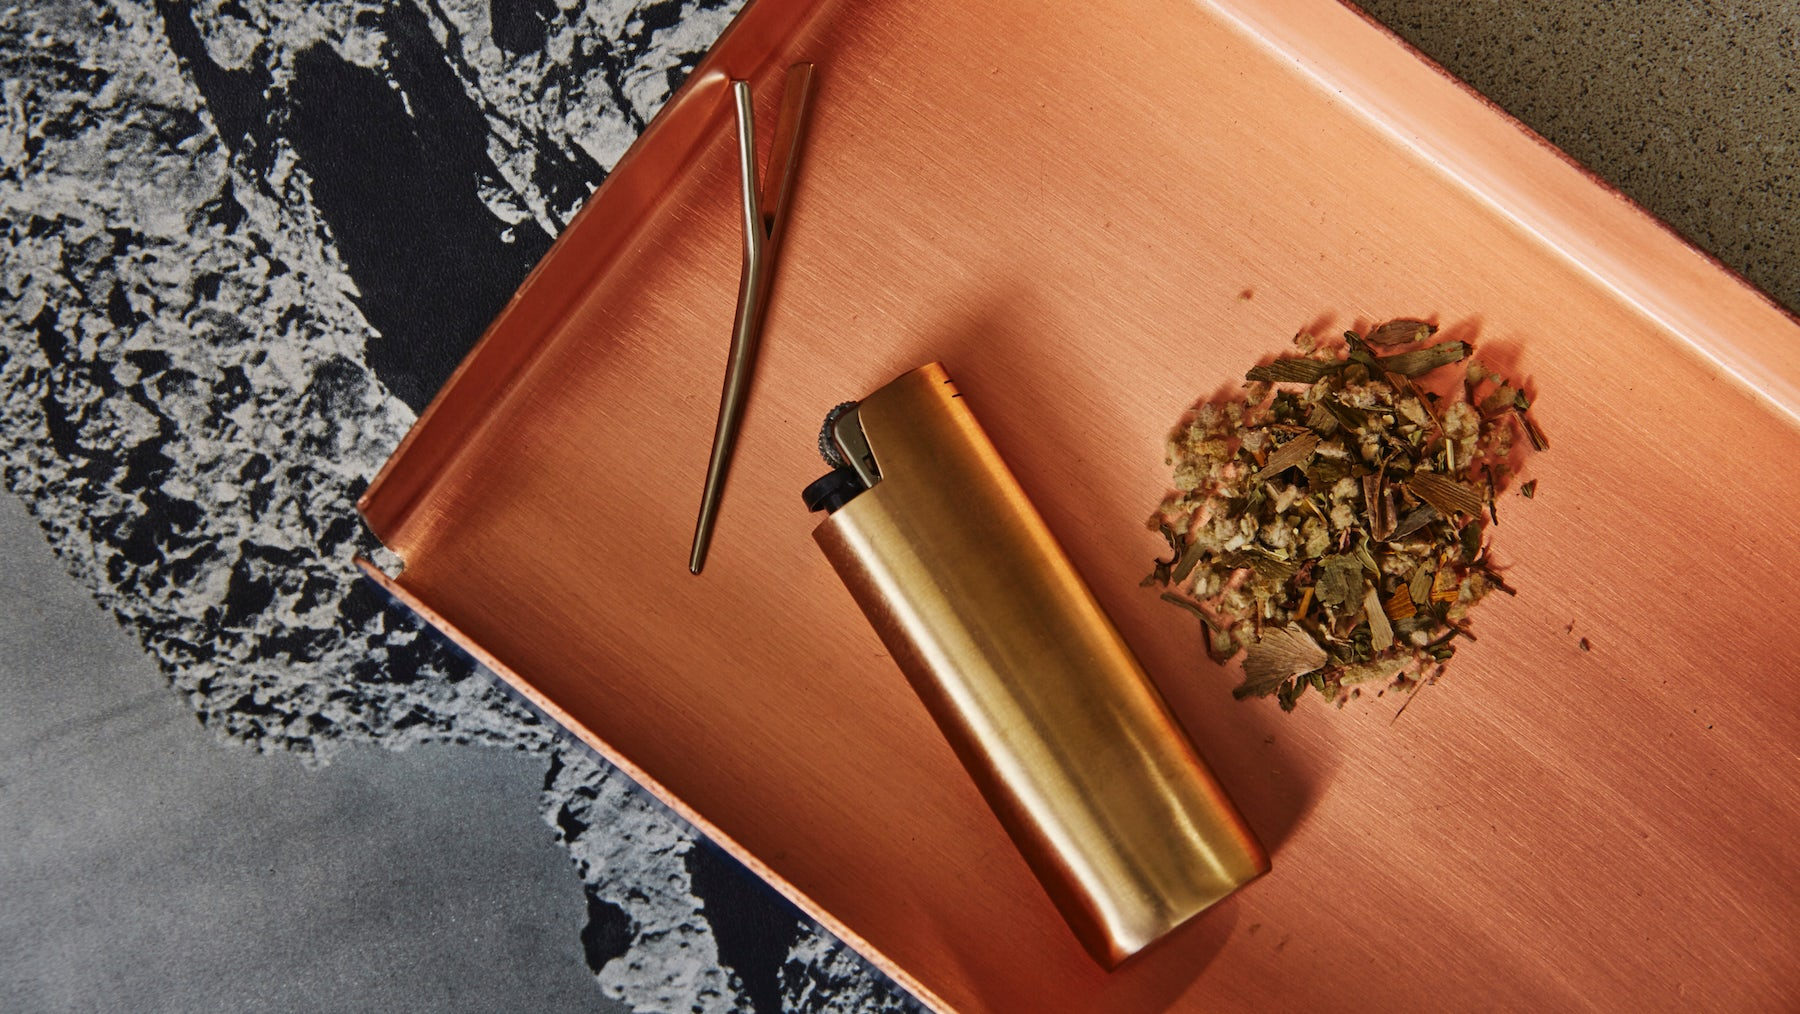 Tetra luxury smoking accessories | Source: Courtesy